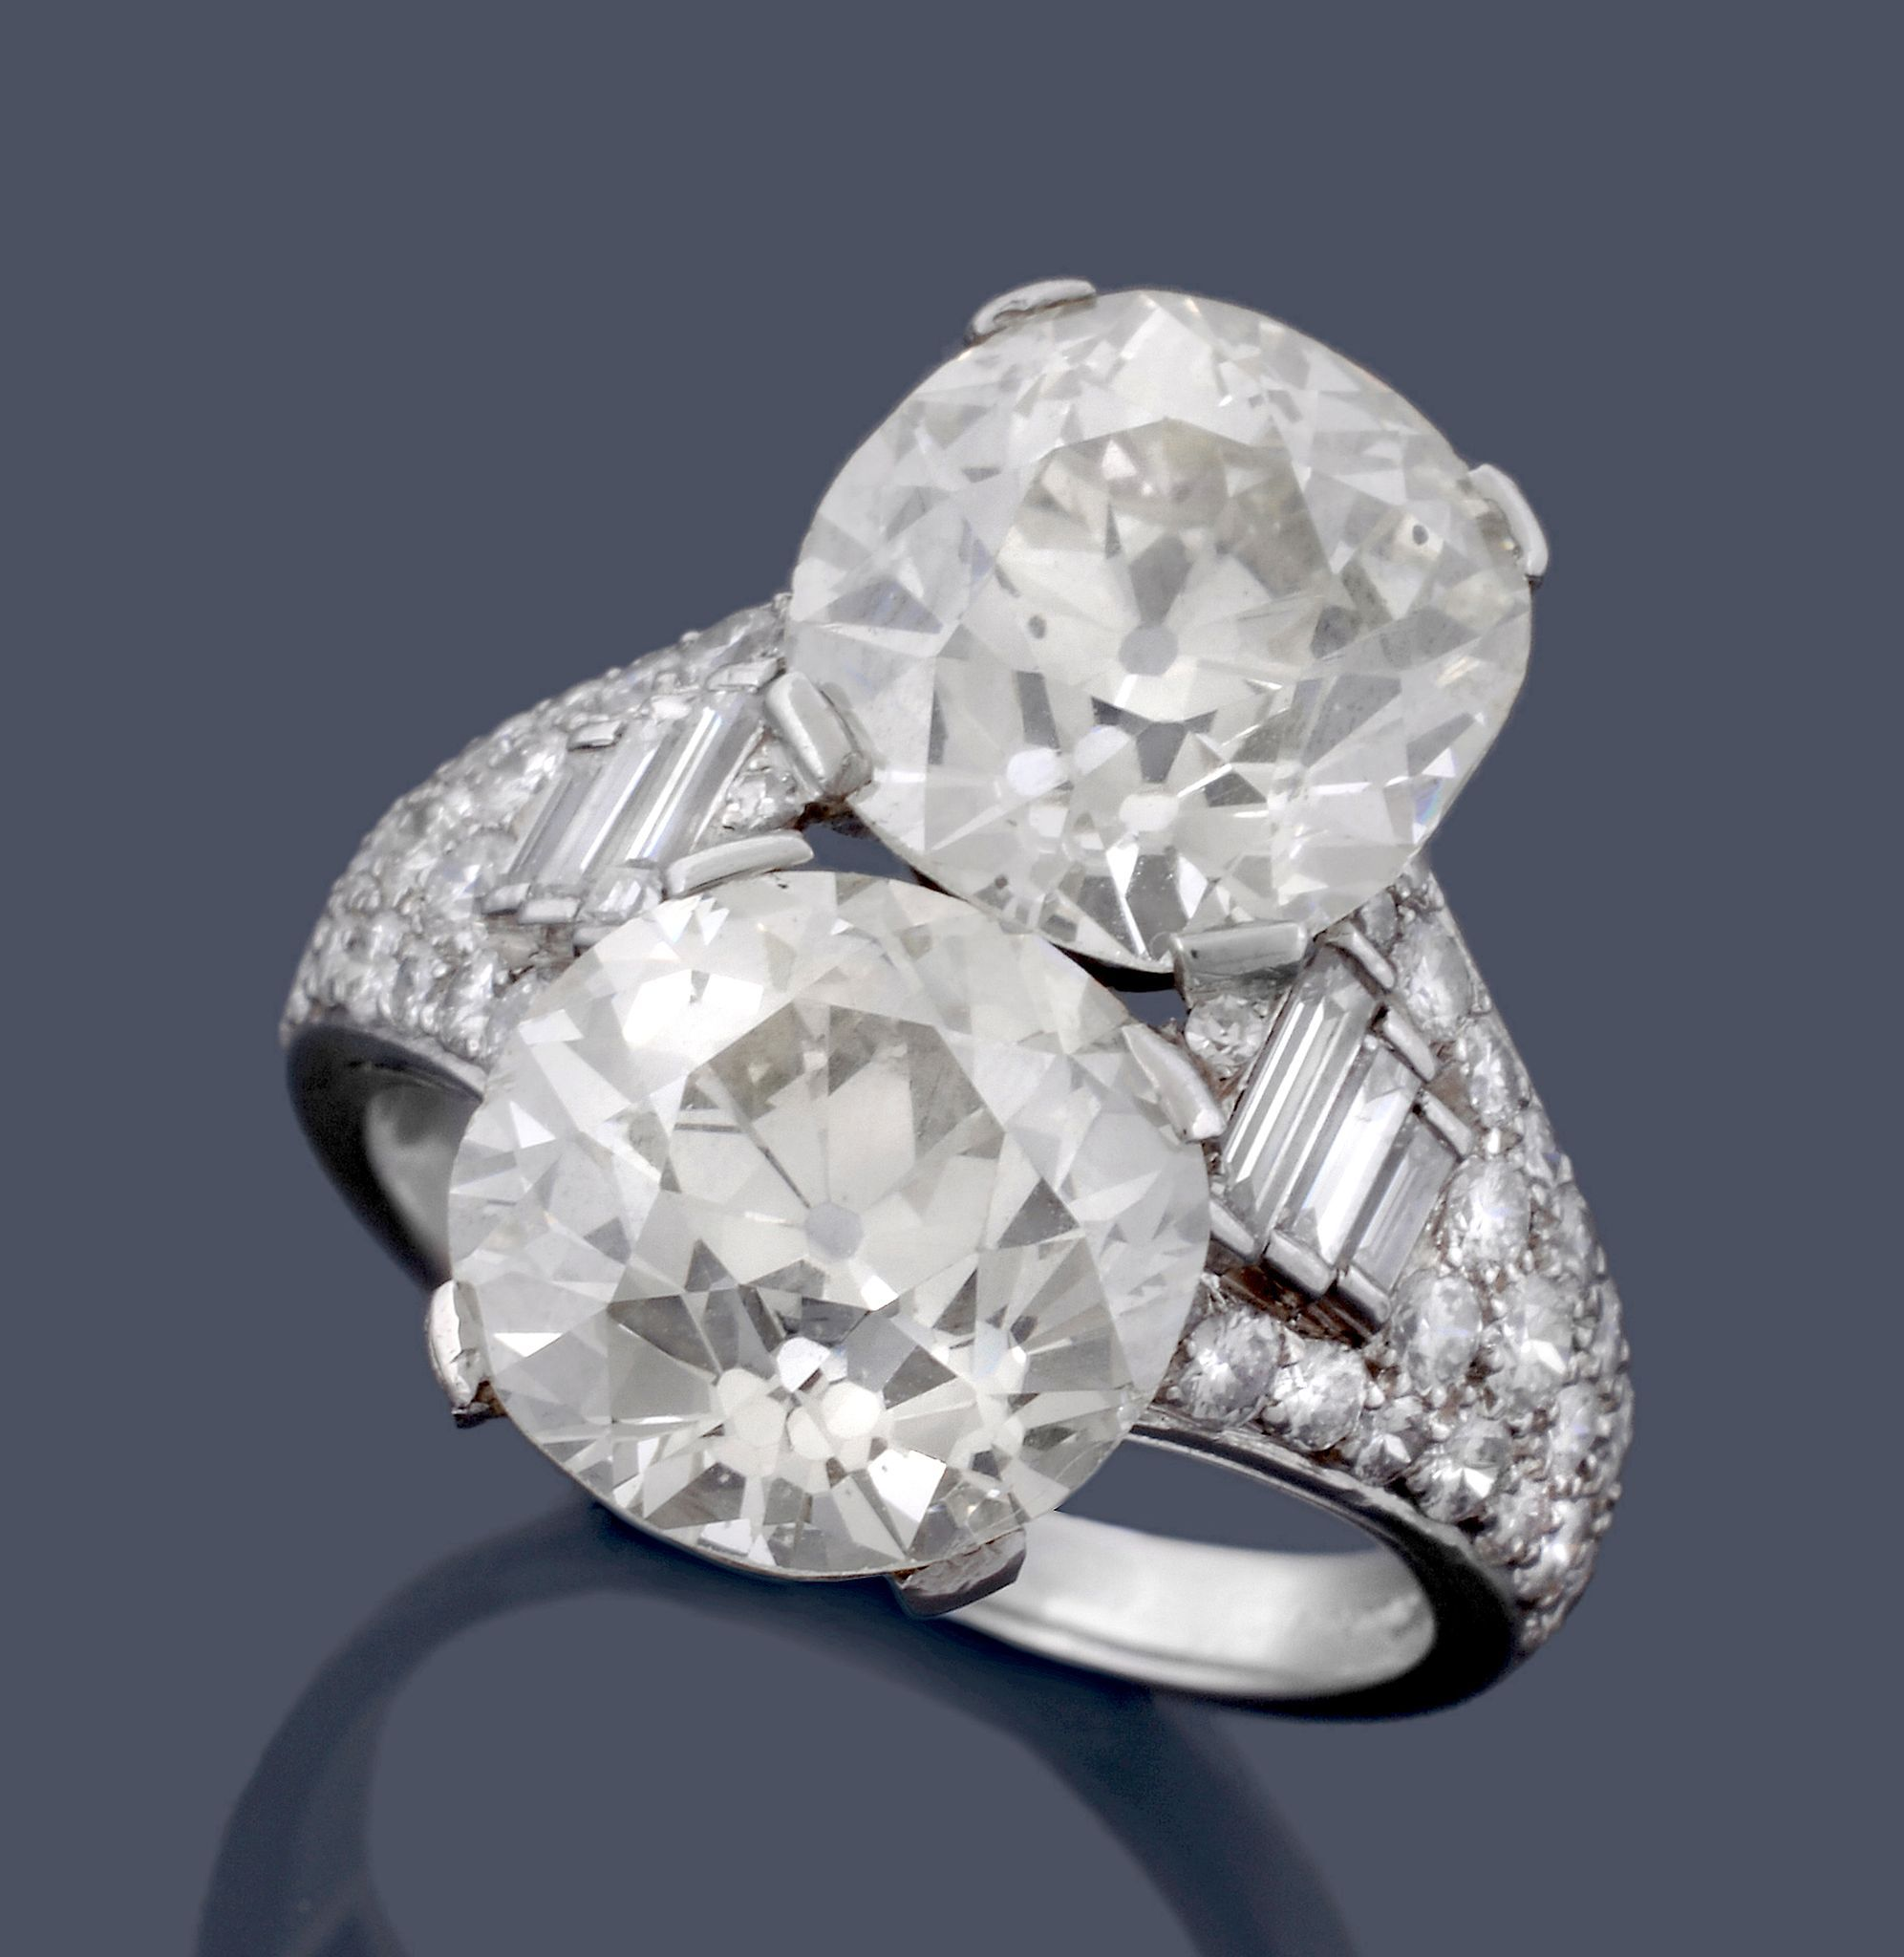 collections designs jewelry ring jewellery brand st designer the forevermark name in florida diamond collection augustine